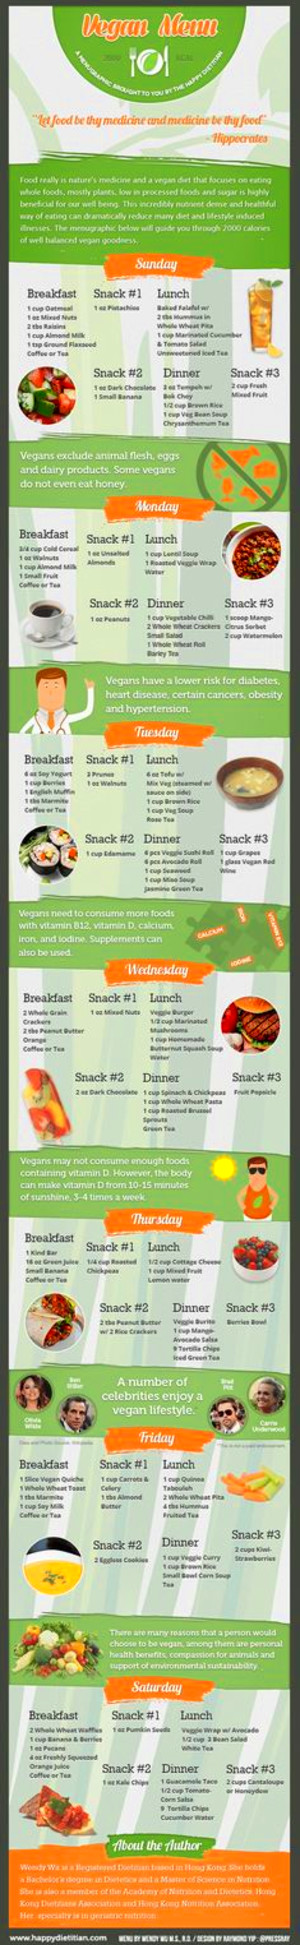 Paleo Vegan Shopping List | Paleo Vegan Diet | PaleoVegan ...